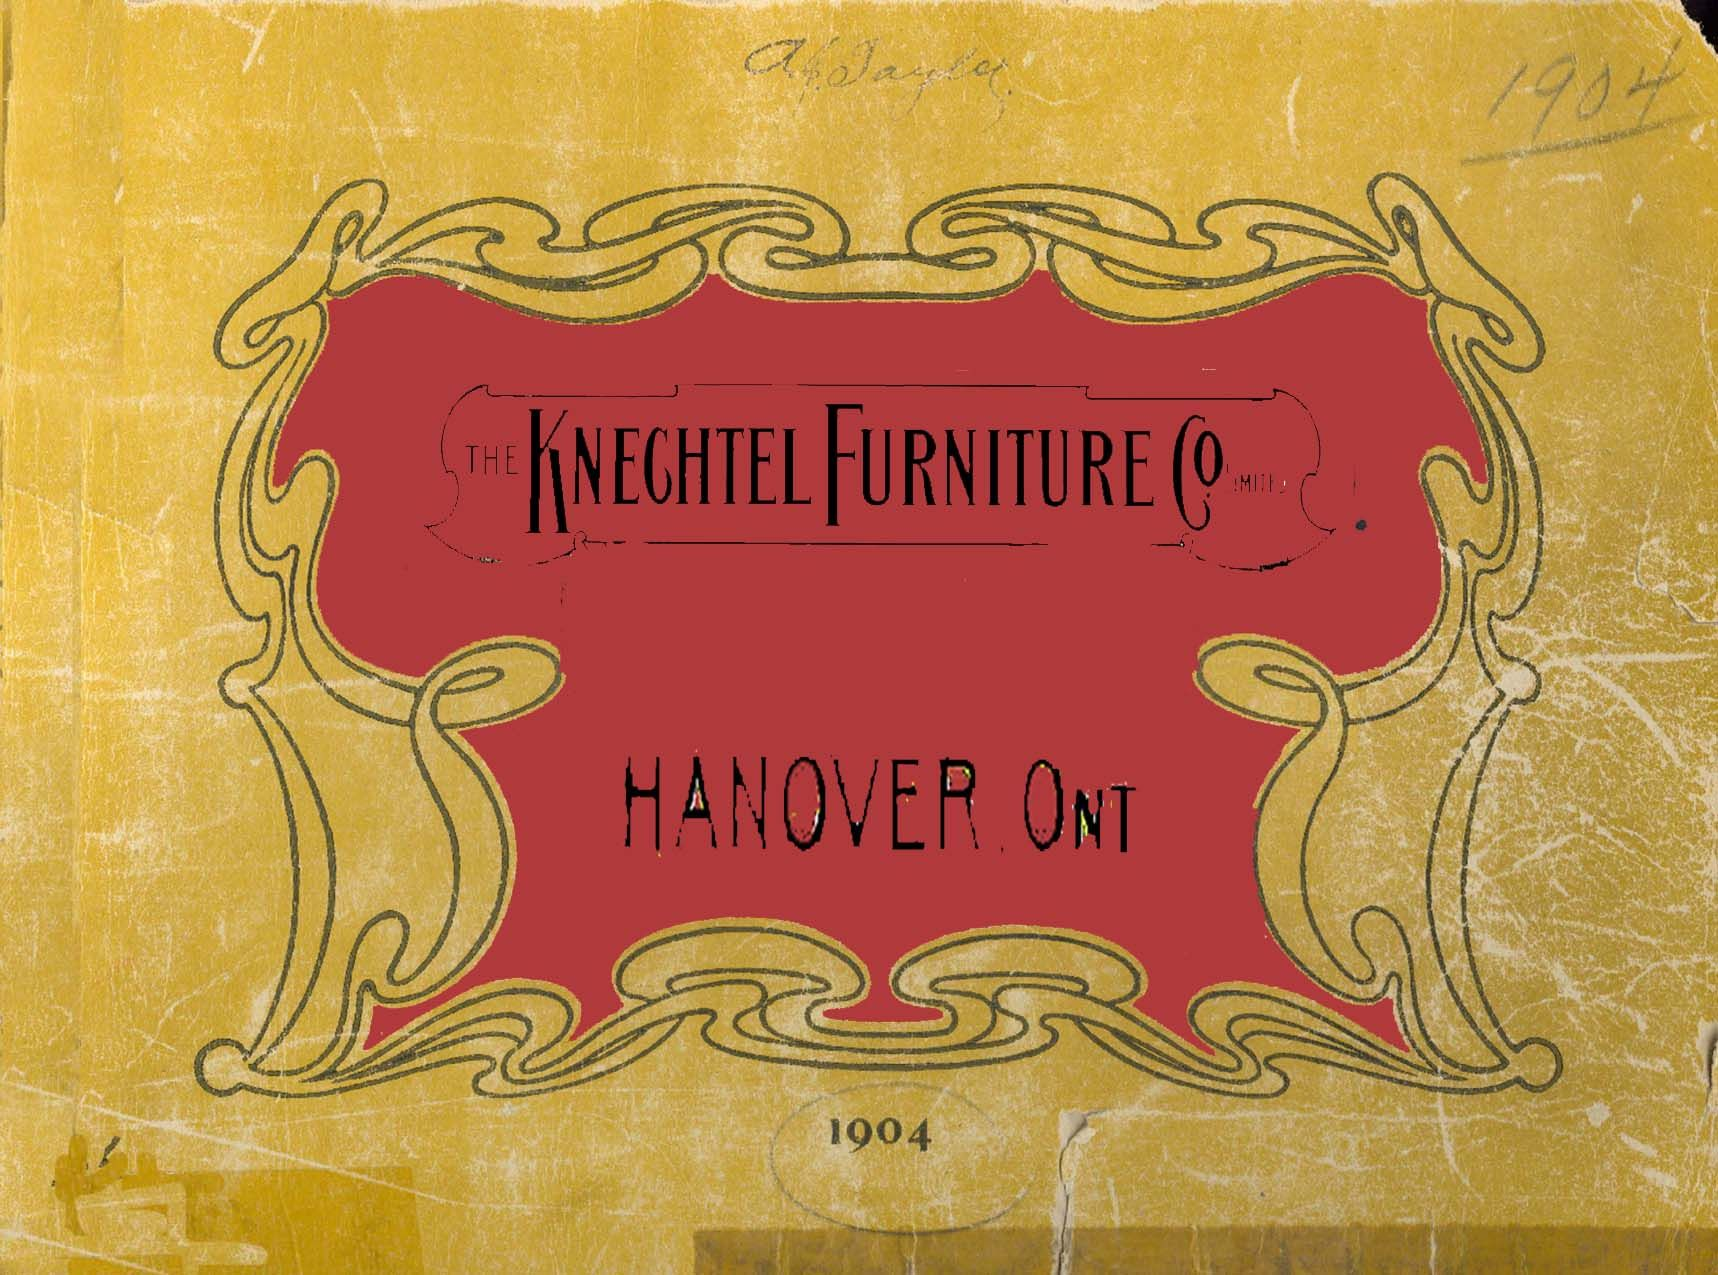 Reproduced 1904 Knechtel Furniture Catalogue